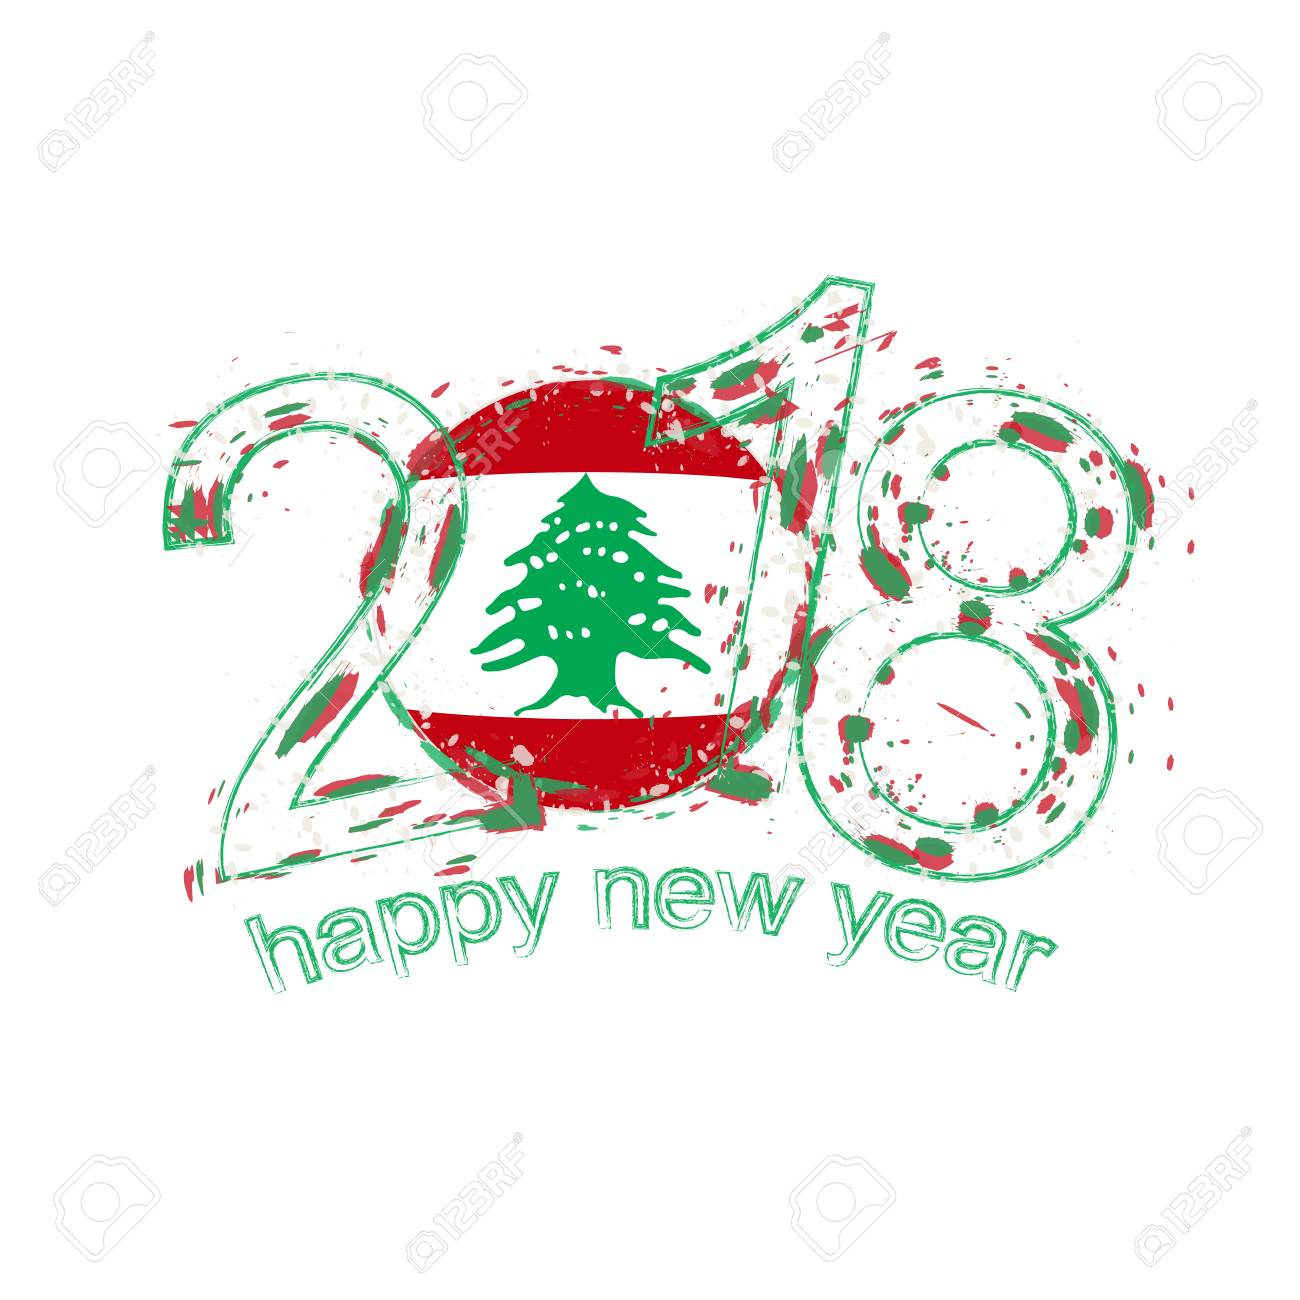 2018 happy new year lebanon grunge vector template for greeting card calendars 2018 seasonal